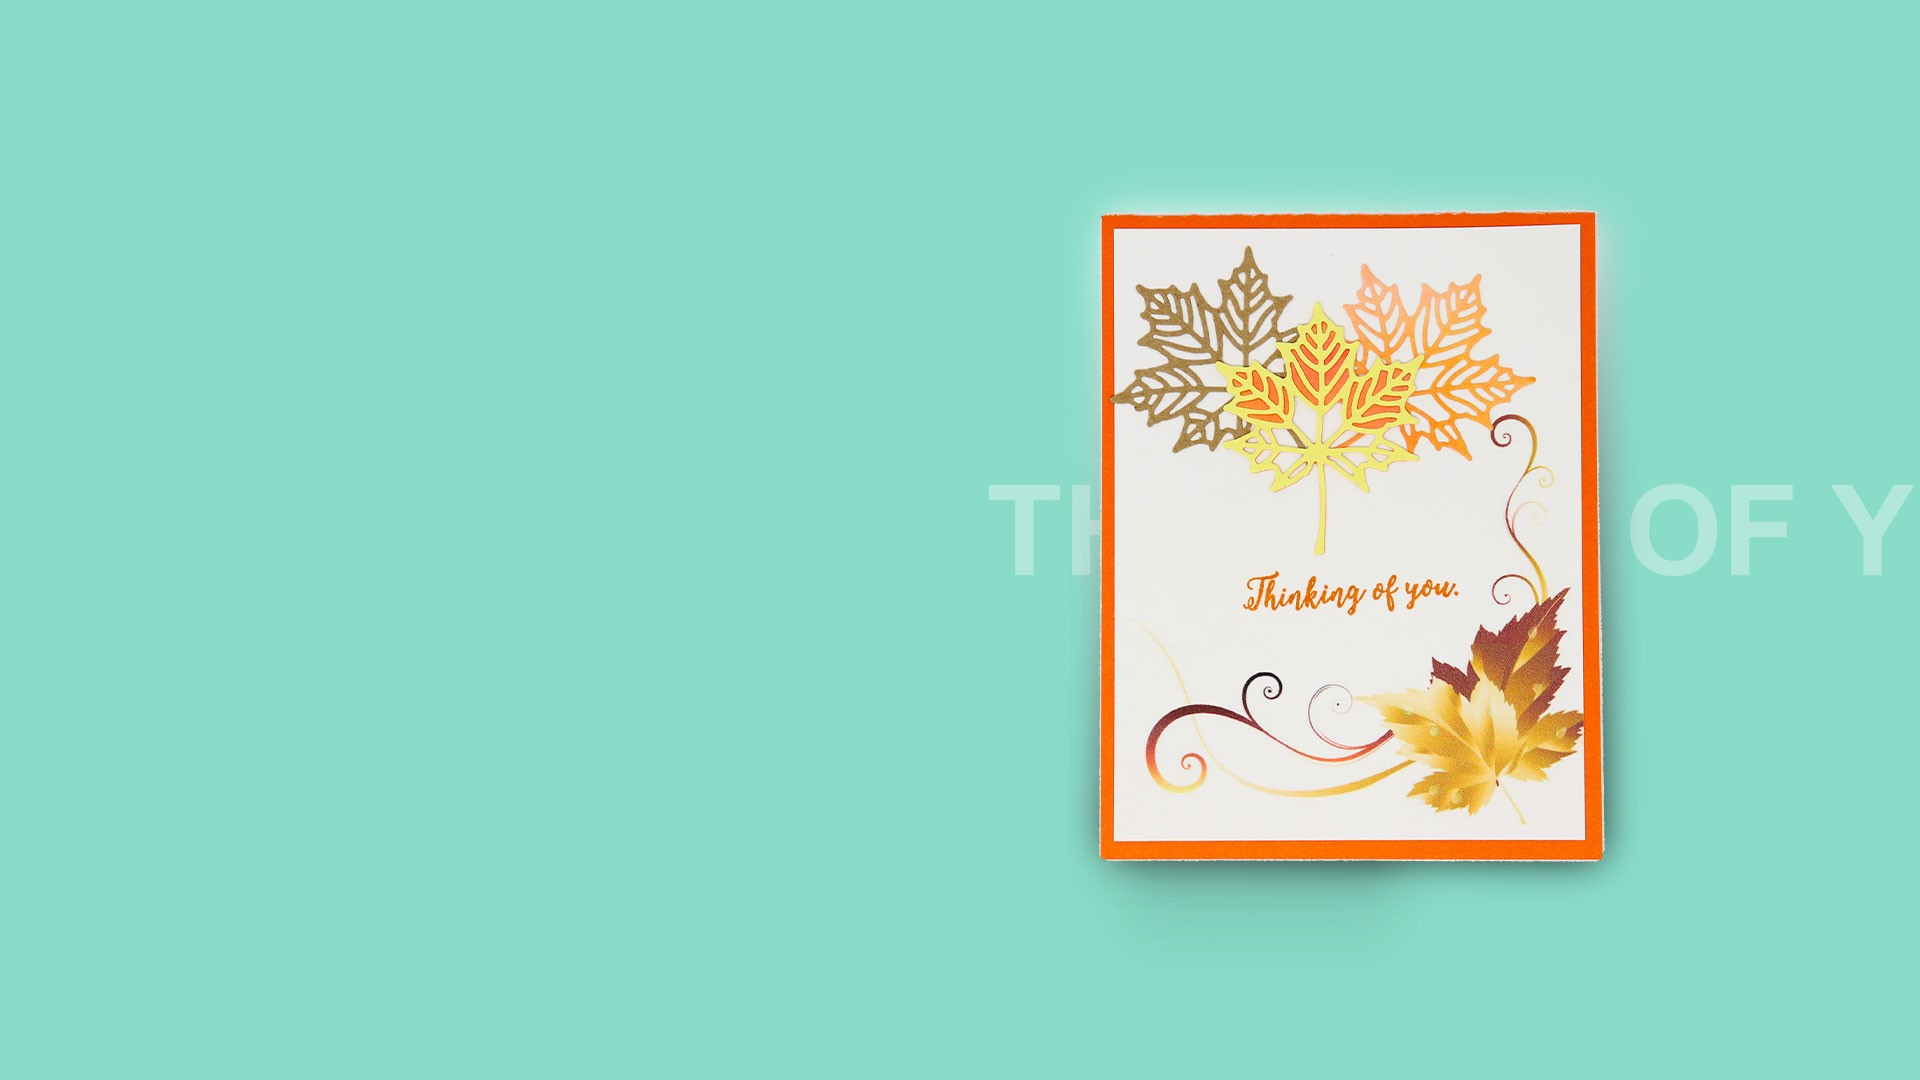 custom greeting cards - THINKING OF YOU